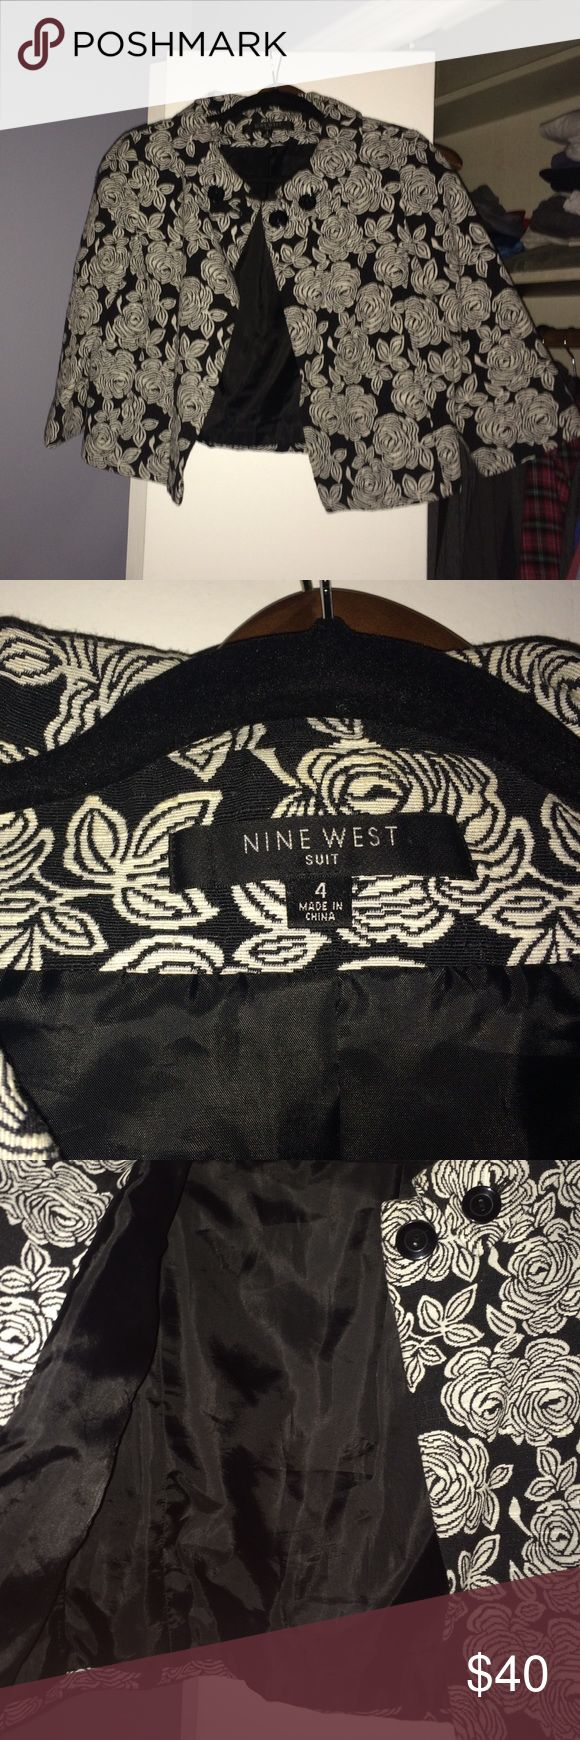 Nine West black & white jacket 3/4 sleeve. NWOT Lined, worn once, and in perfect condition. Very classy over a dress or with a wife beater, trashed jeans, and heels. I got a ton of compliments on this number. Nine West Jackets & Coats Blazers